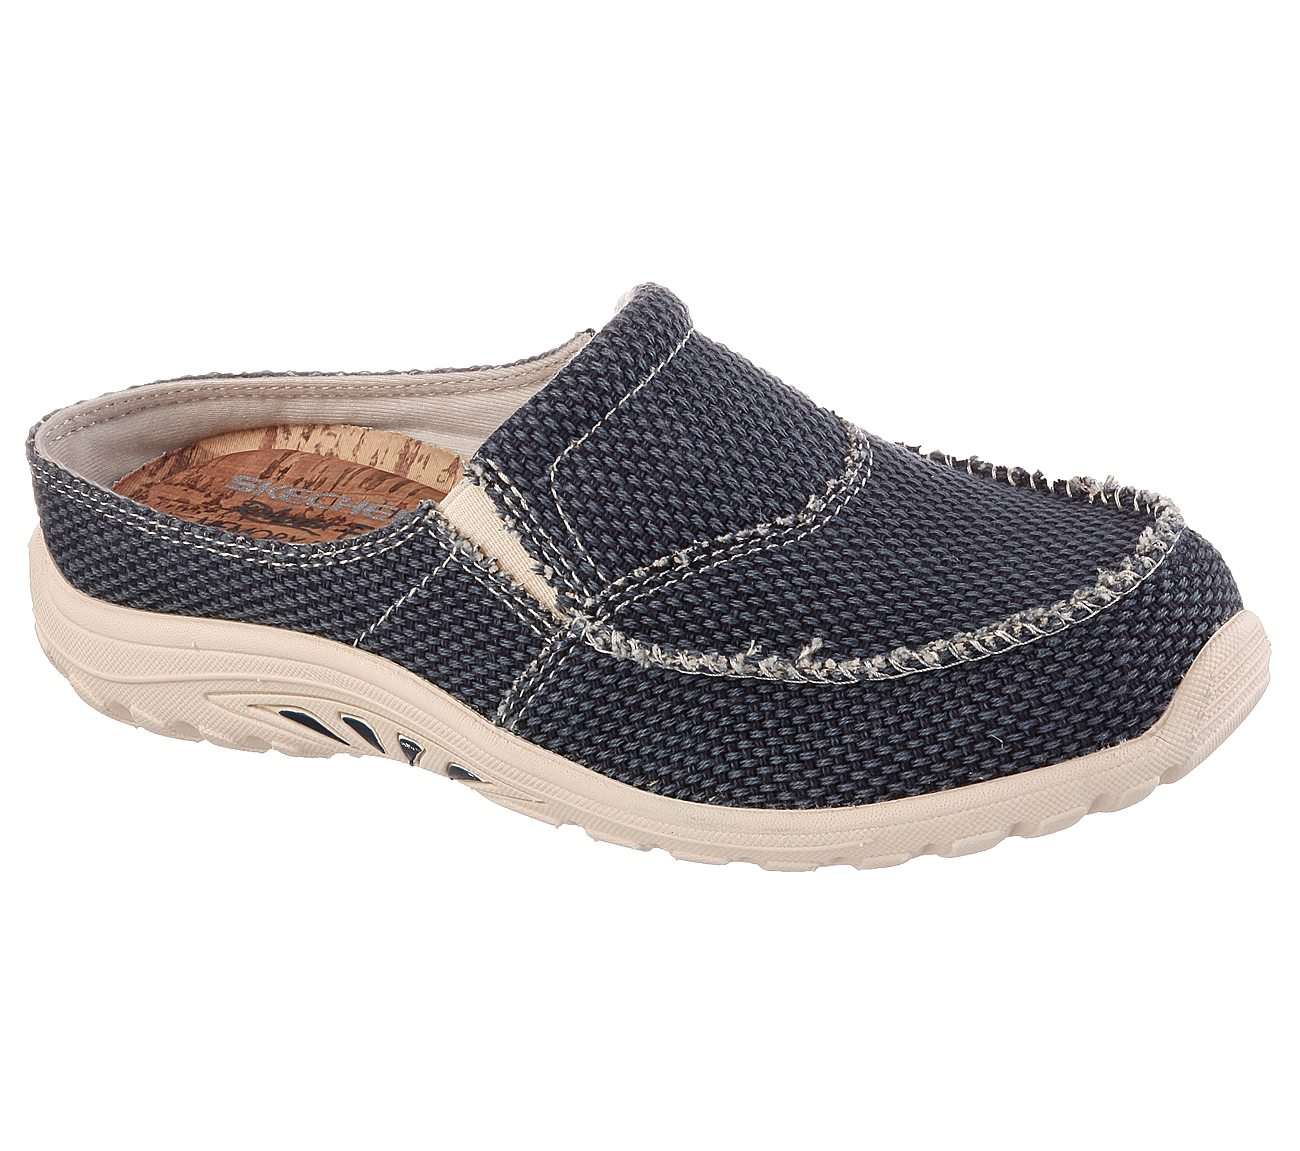 5ccfbd600235 Buy SKECHERS Relaxed Fit  Reggae Fest Modern Comfort Shoes only  35.00